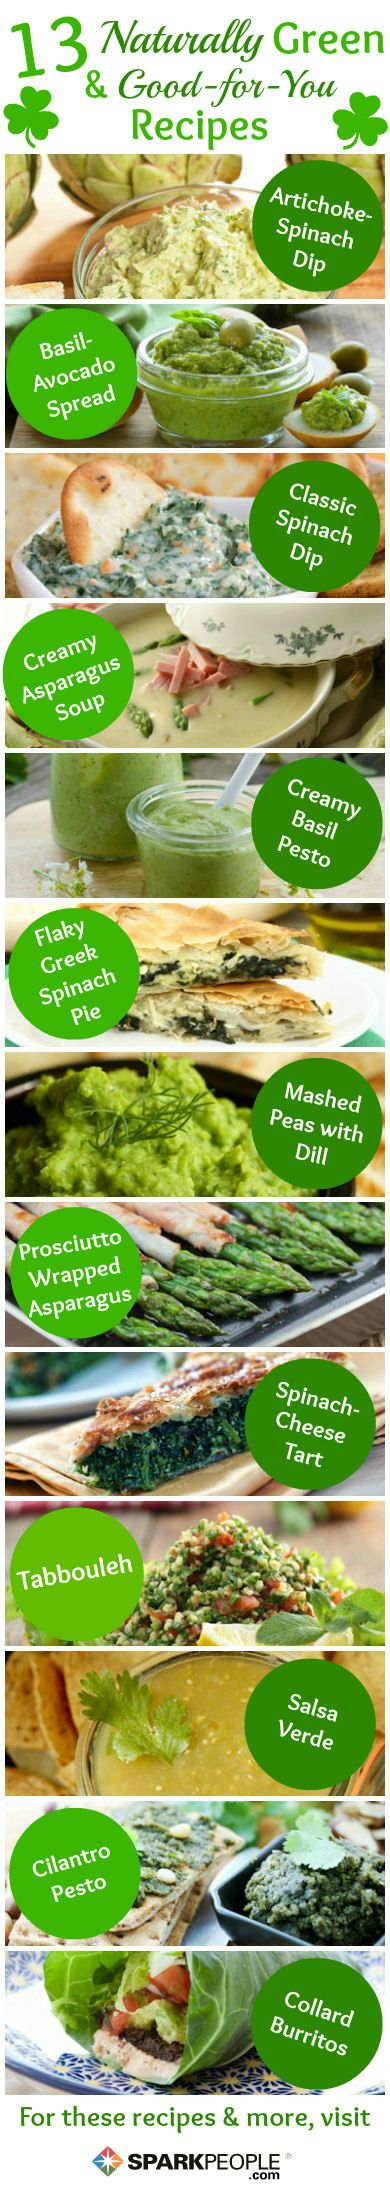 Healthy GREEN St. Patrick's Day Recipes (no food coloring required) | via @SparkPeople #diet #nutrition #food